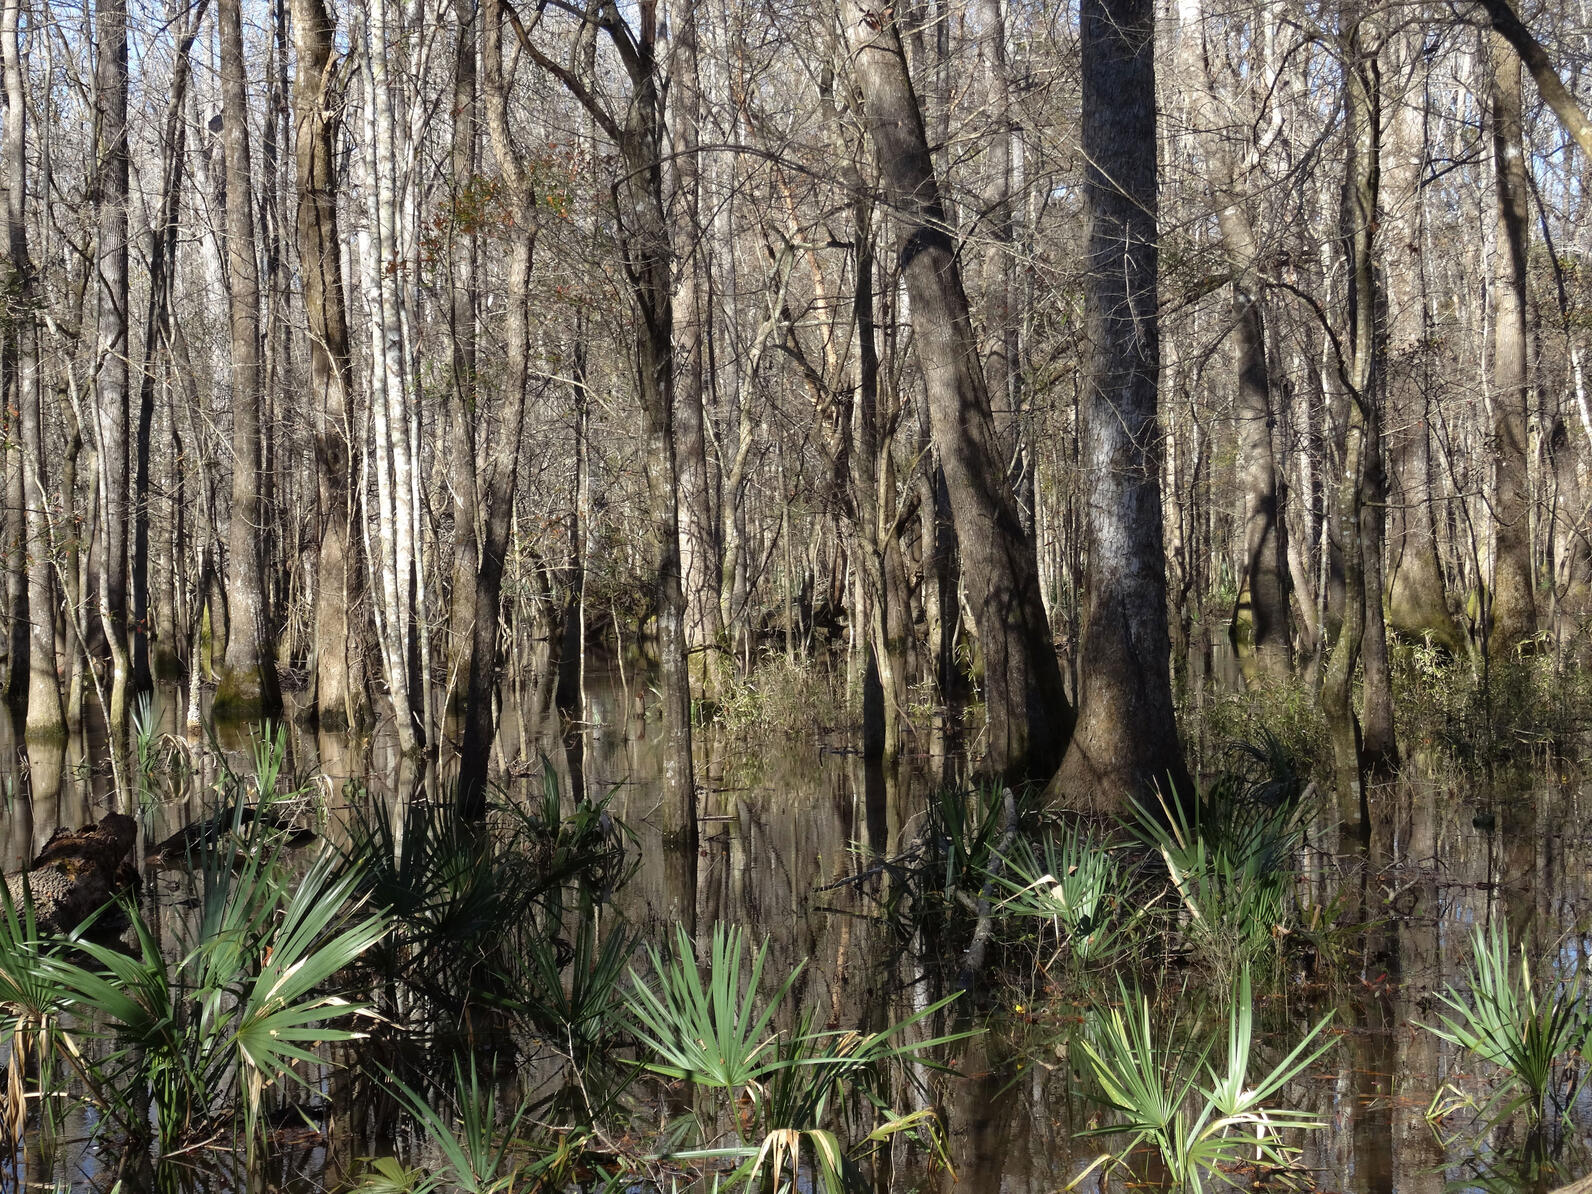 Wassamassaw Swamp in the winter with great reflections of Tupelo and Dwarf Palmettos across a wet landscape